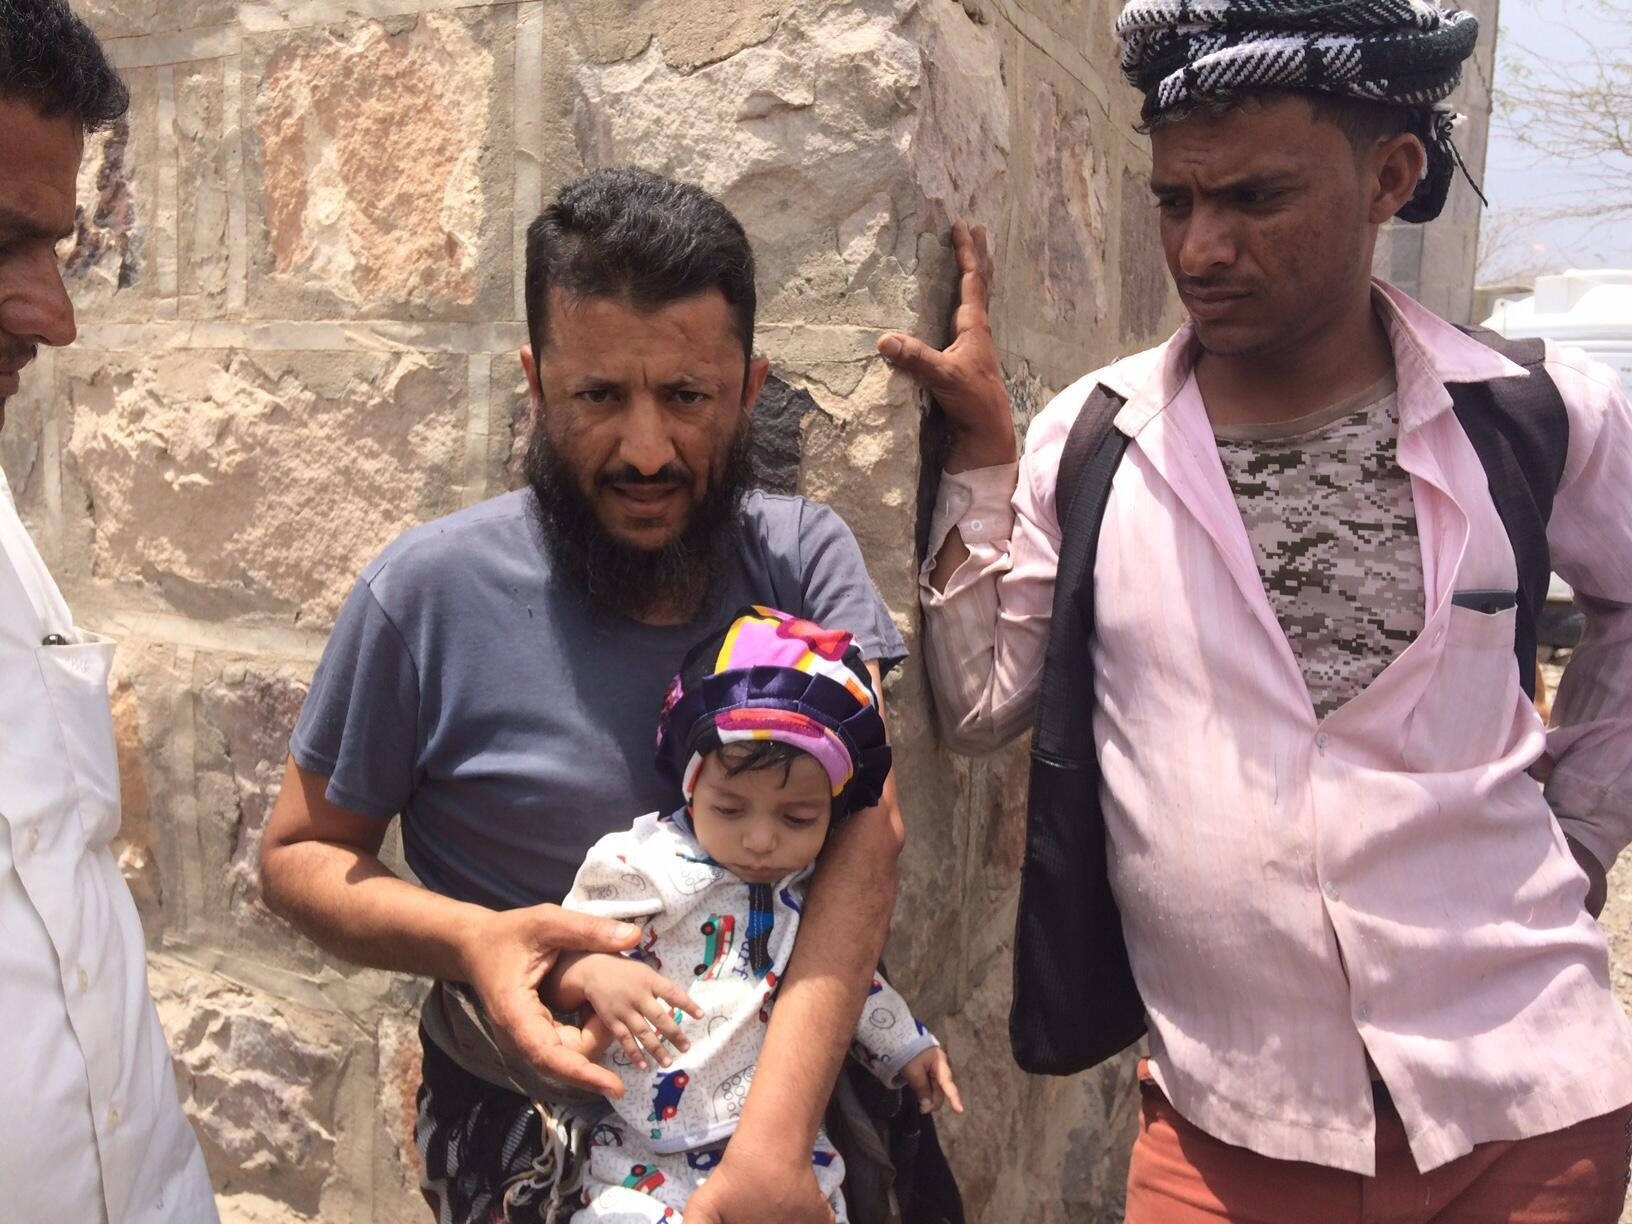 Yemeni boy Bachar, 9 months old, suffers from malnutrition in a country witnessing what the United Nations calls the world's worst humanitarian crisis.